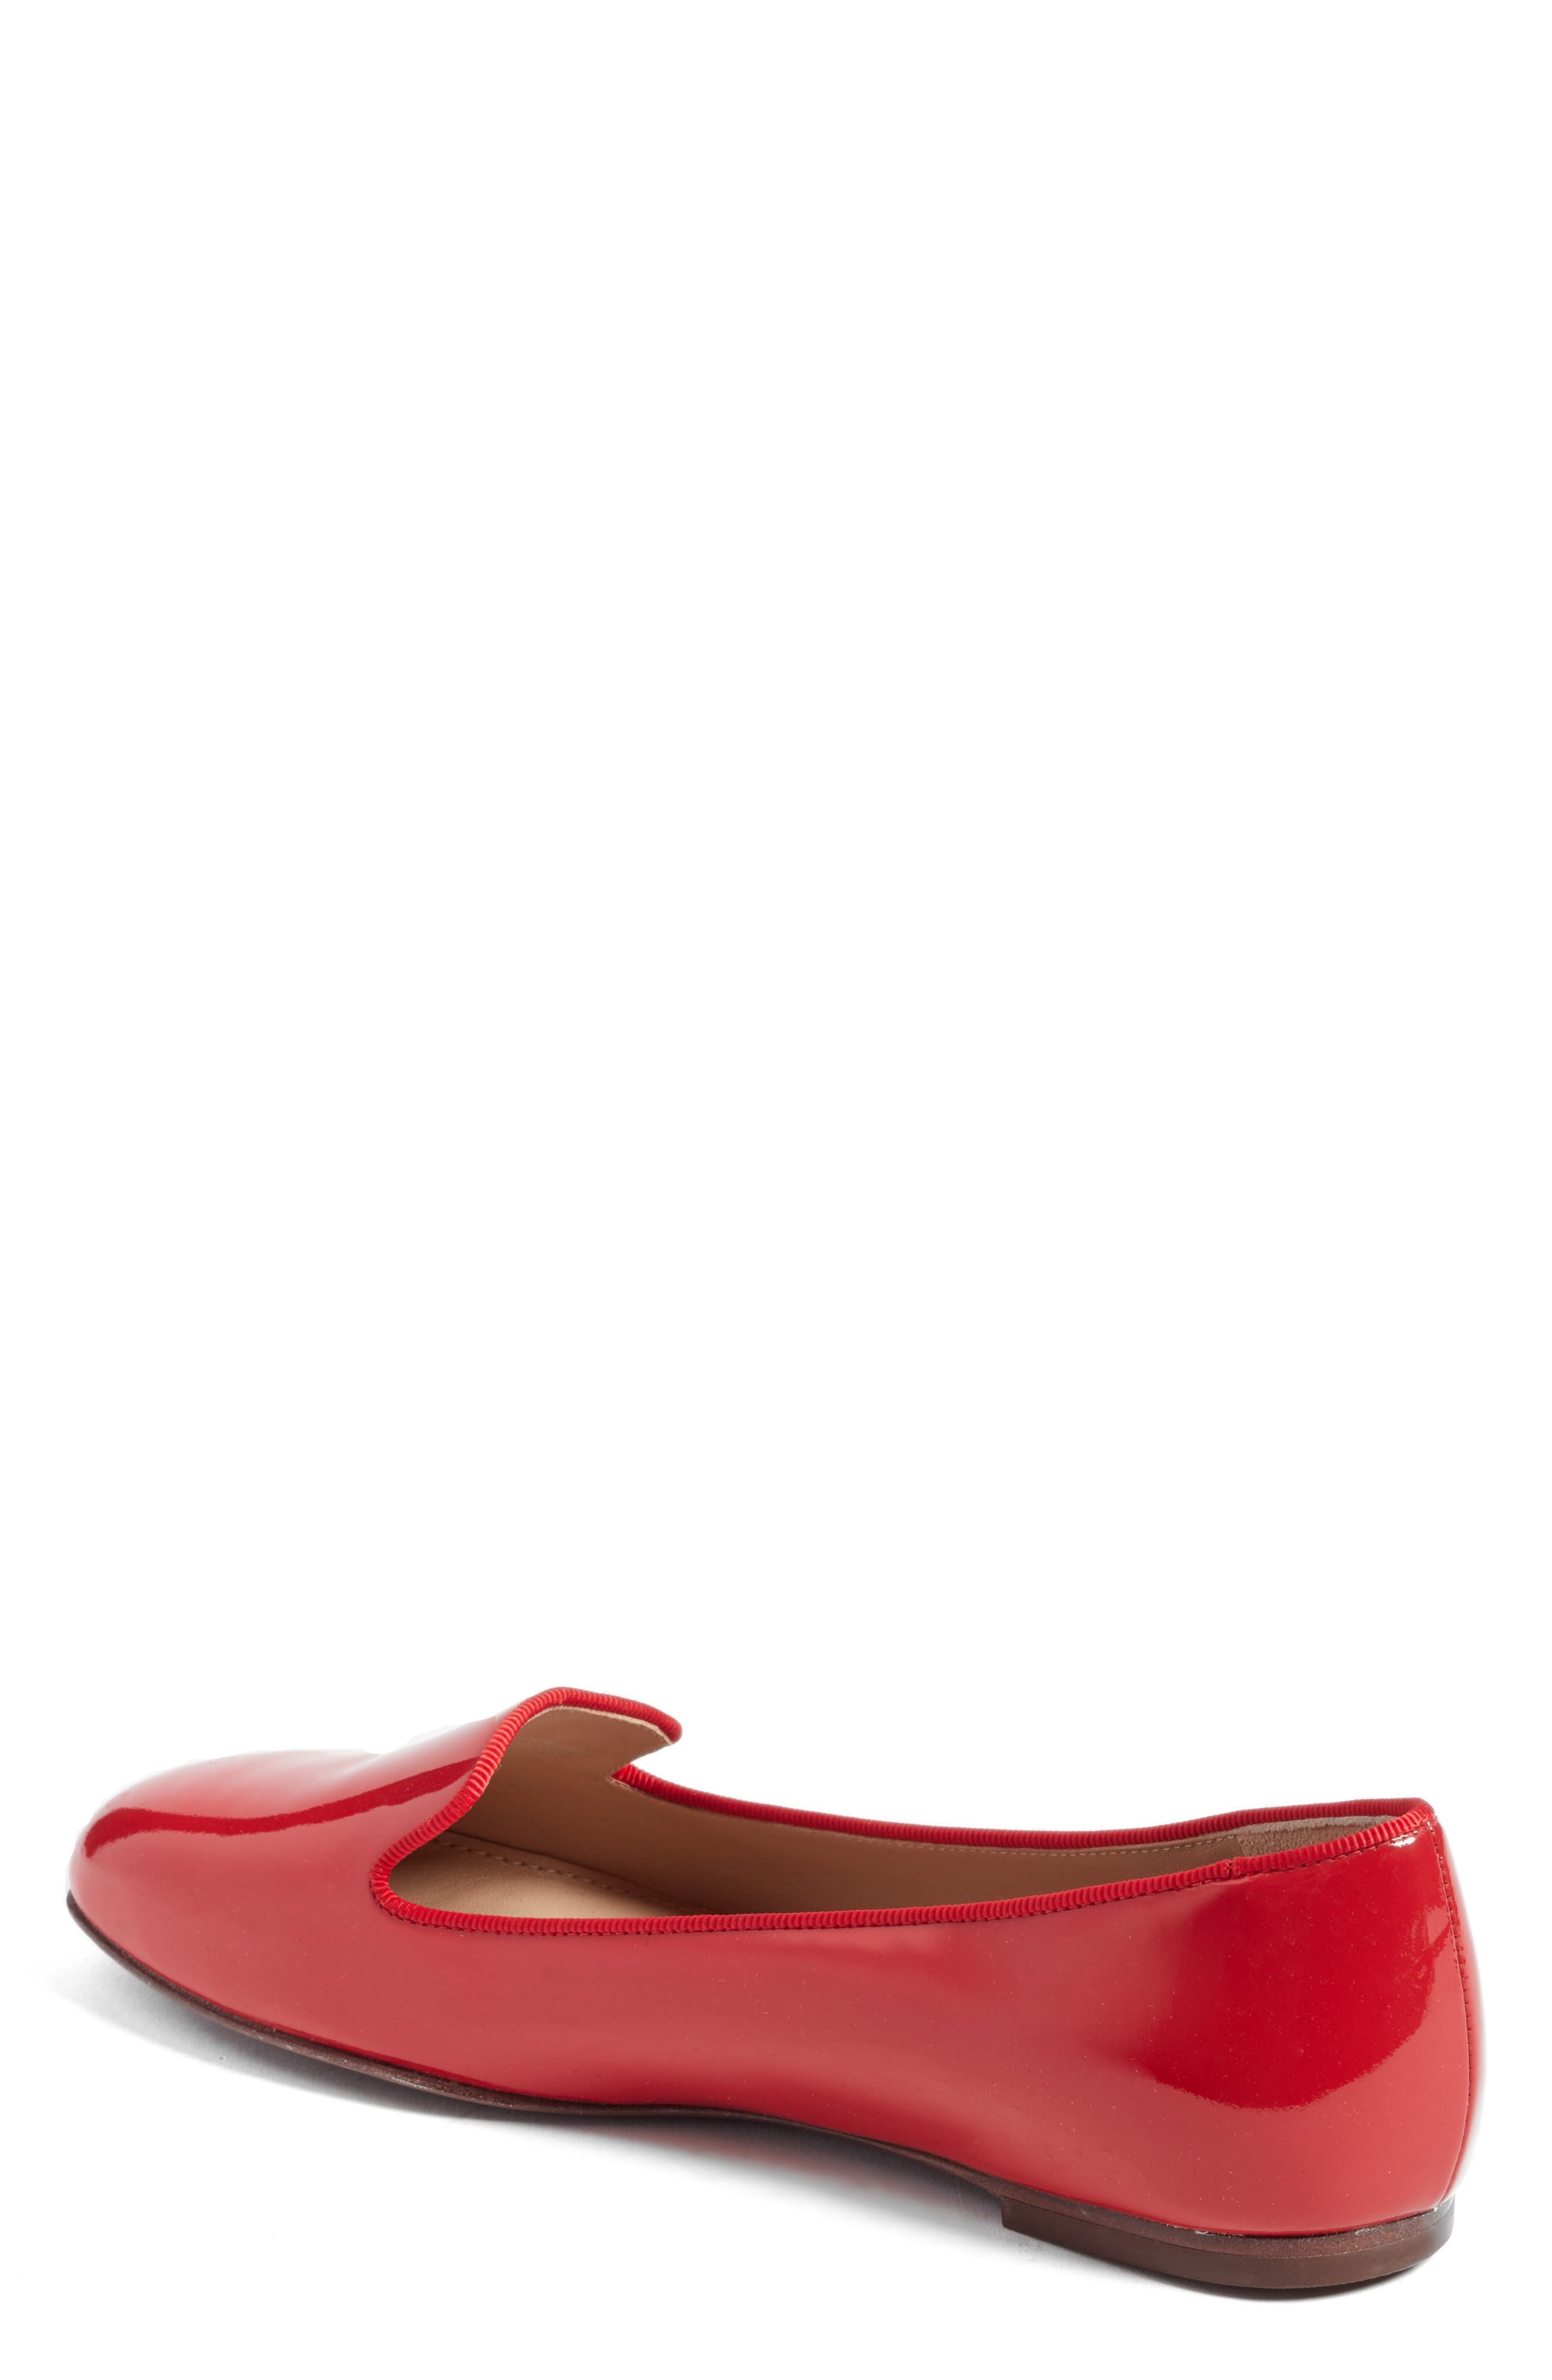 Alternate Image 2  - Tory Burch Samantha Loafer (Women)